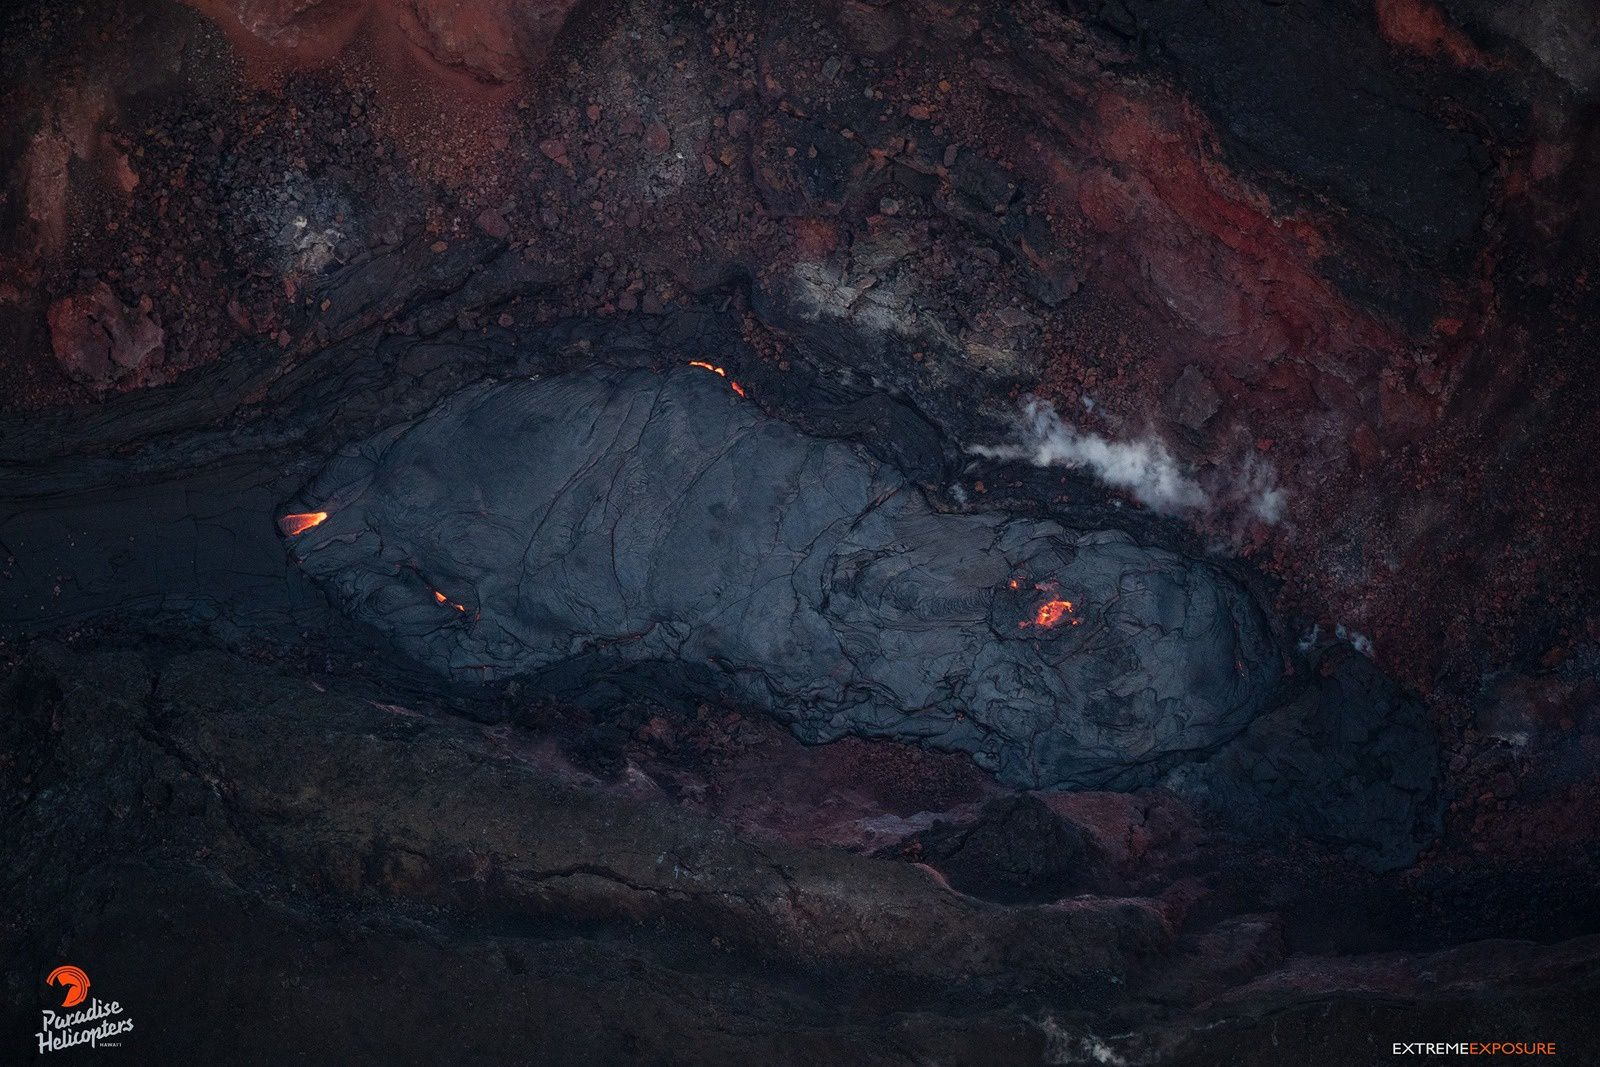 Kilauea East Rift Zone - small lava pond in the cone of crack 8, with hot spots - Stock Photo BO 01.09.2018